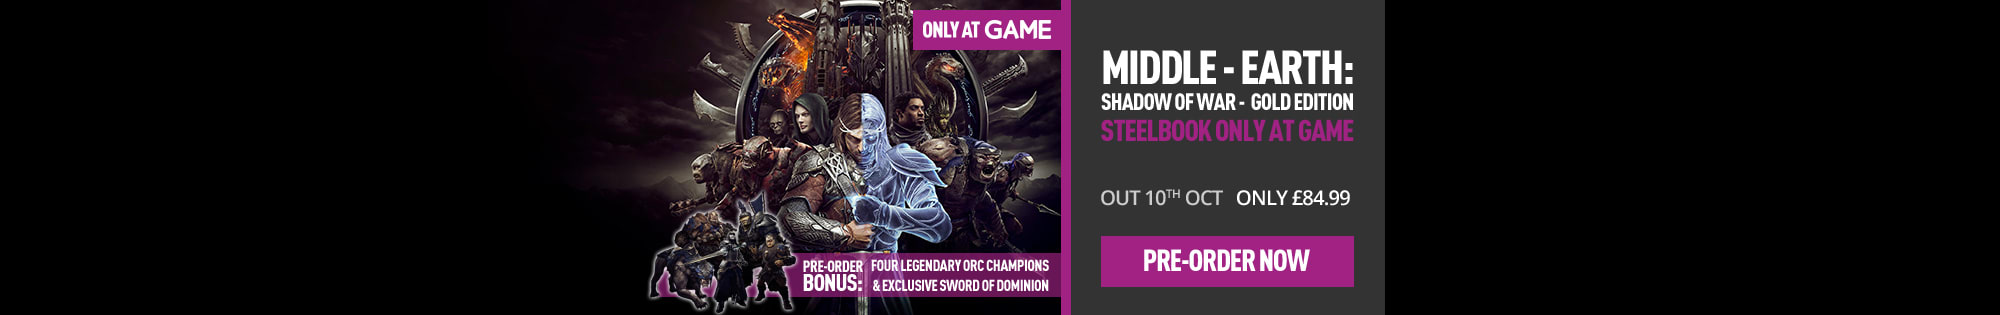 Pre-order Middle Earth: Shadow of War - Gold Edition - Homepage banner